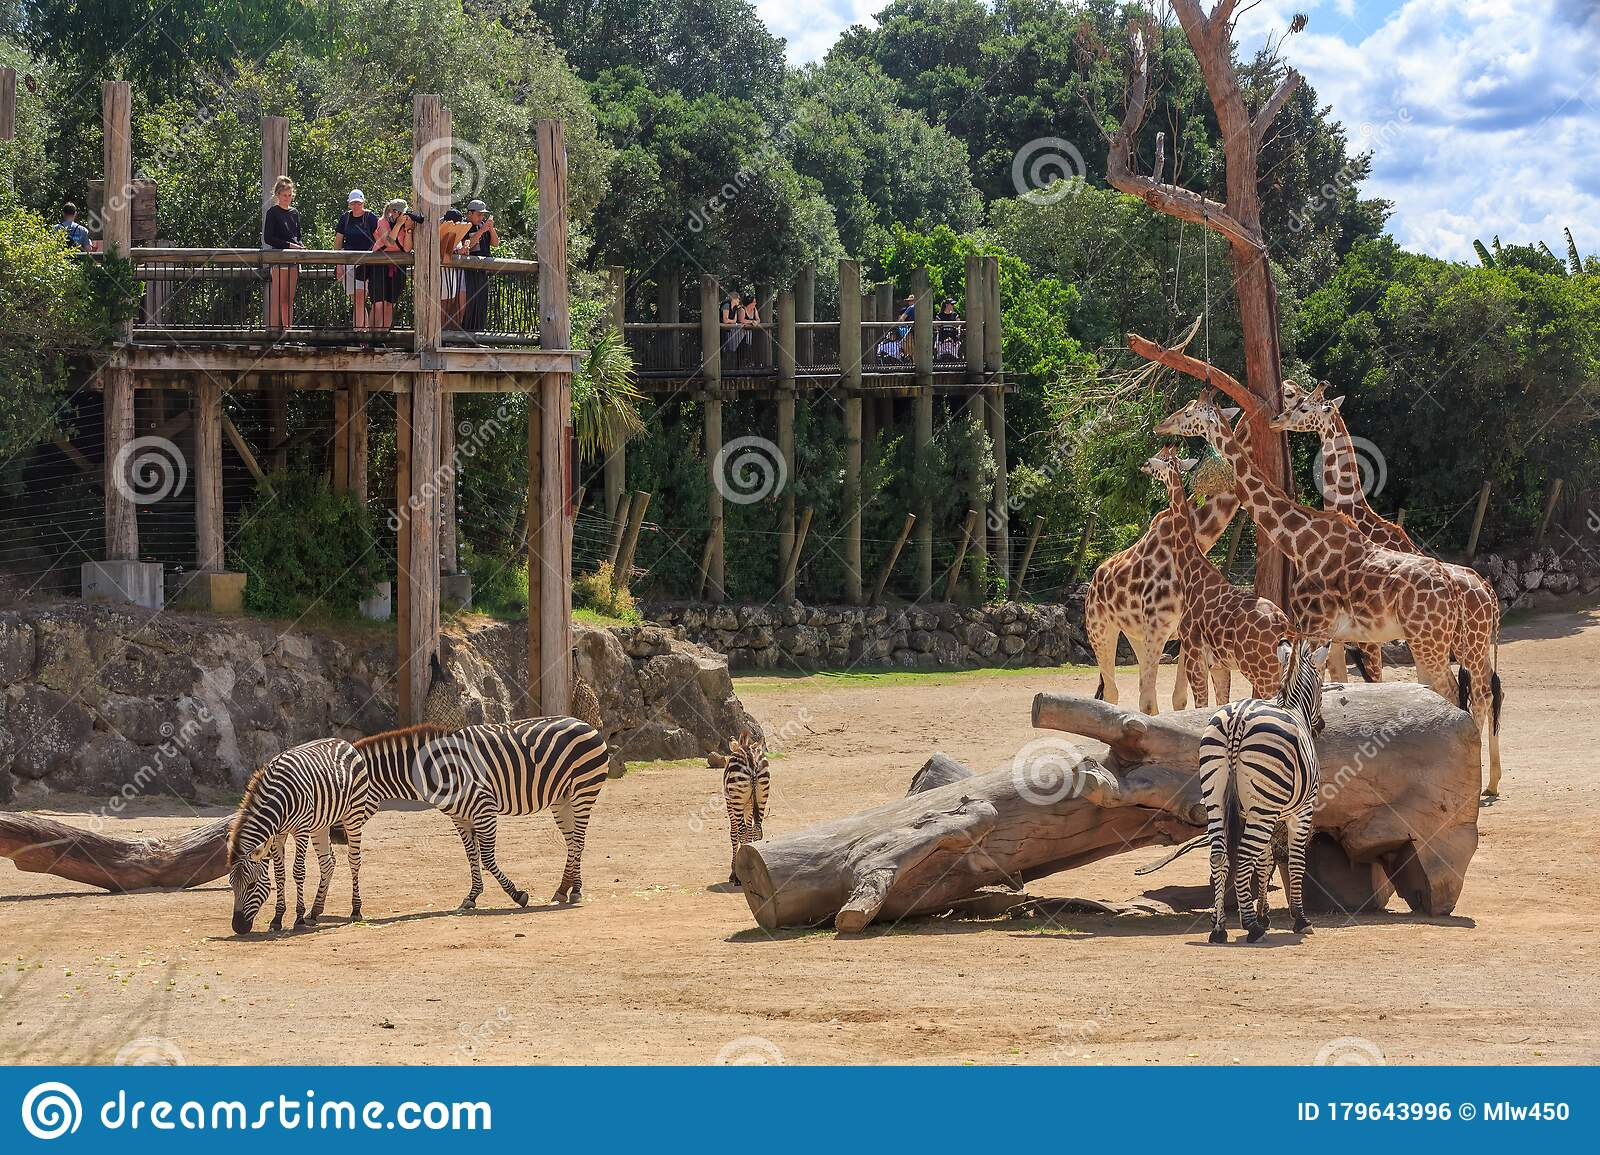 People Looking At Giraffes And Zebras Auckland Zoo New